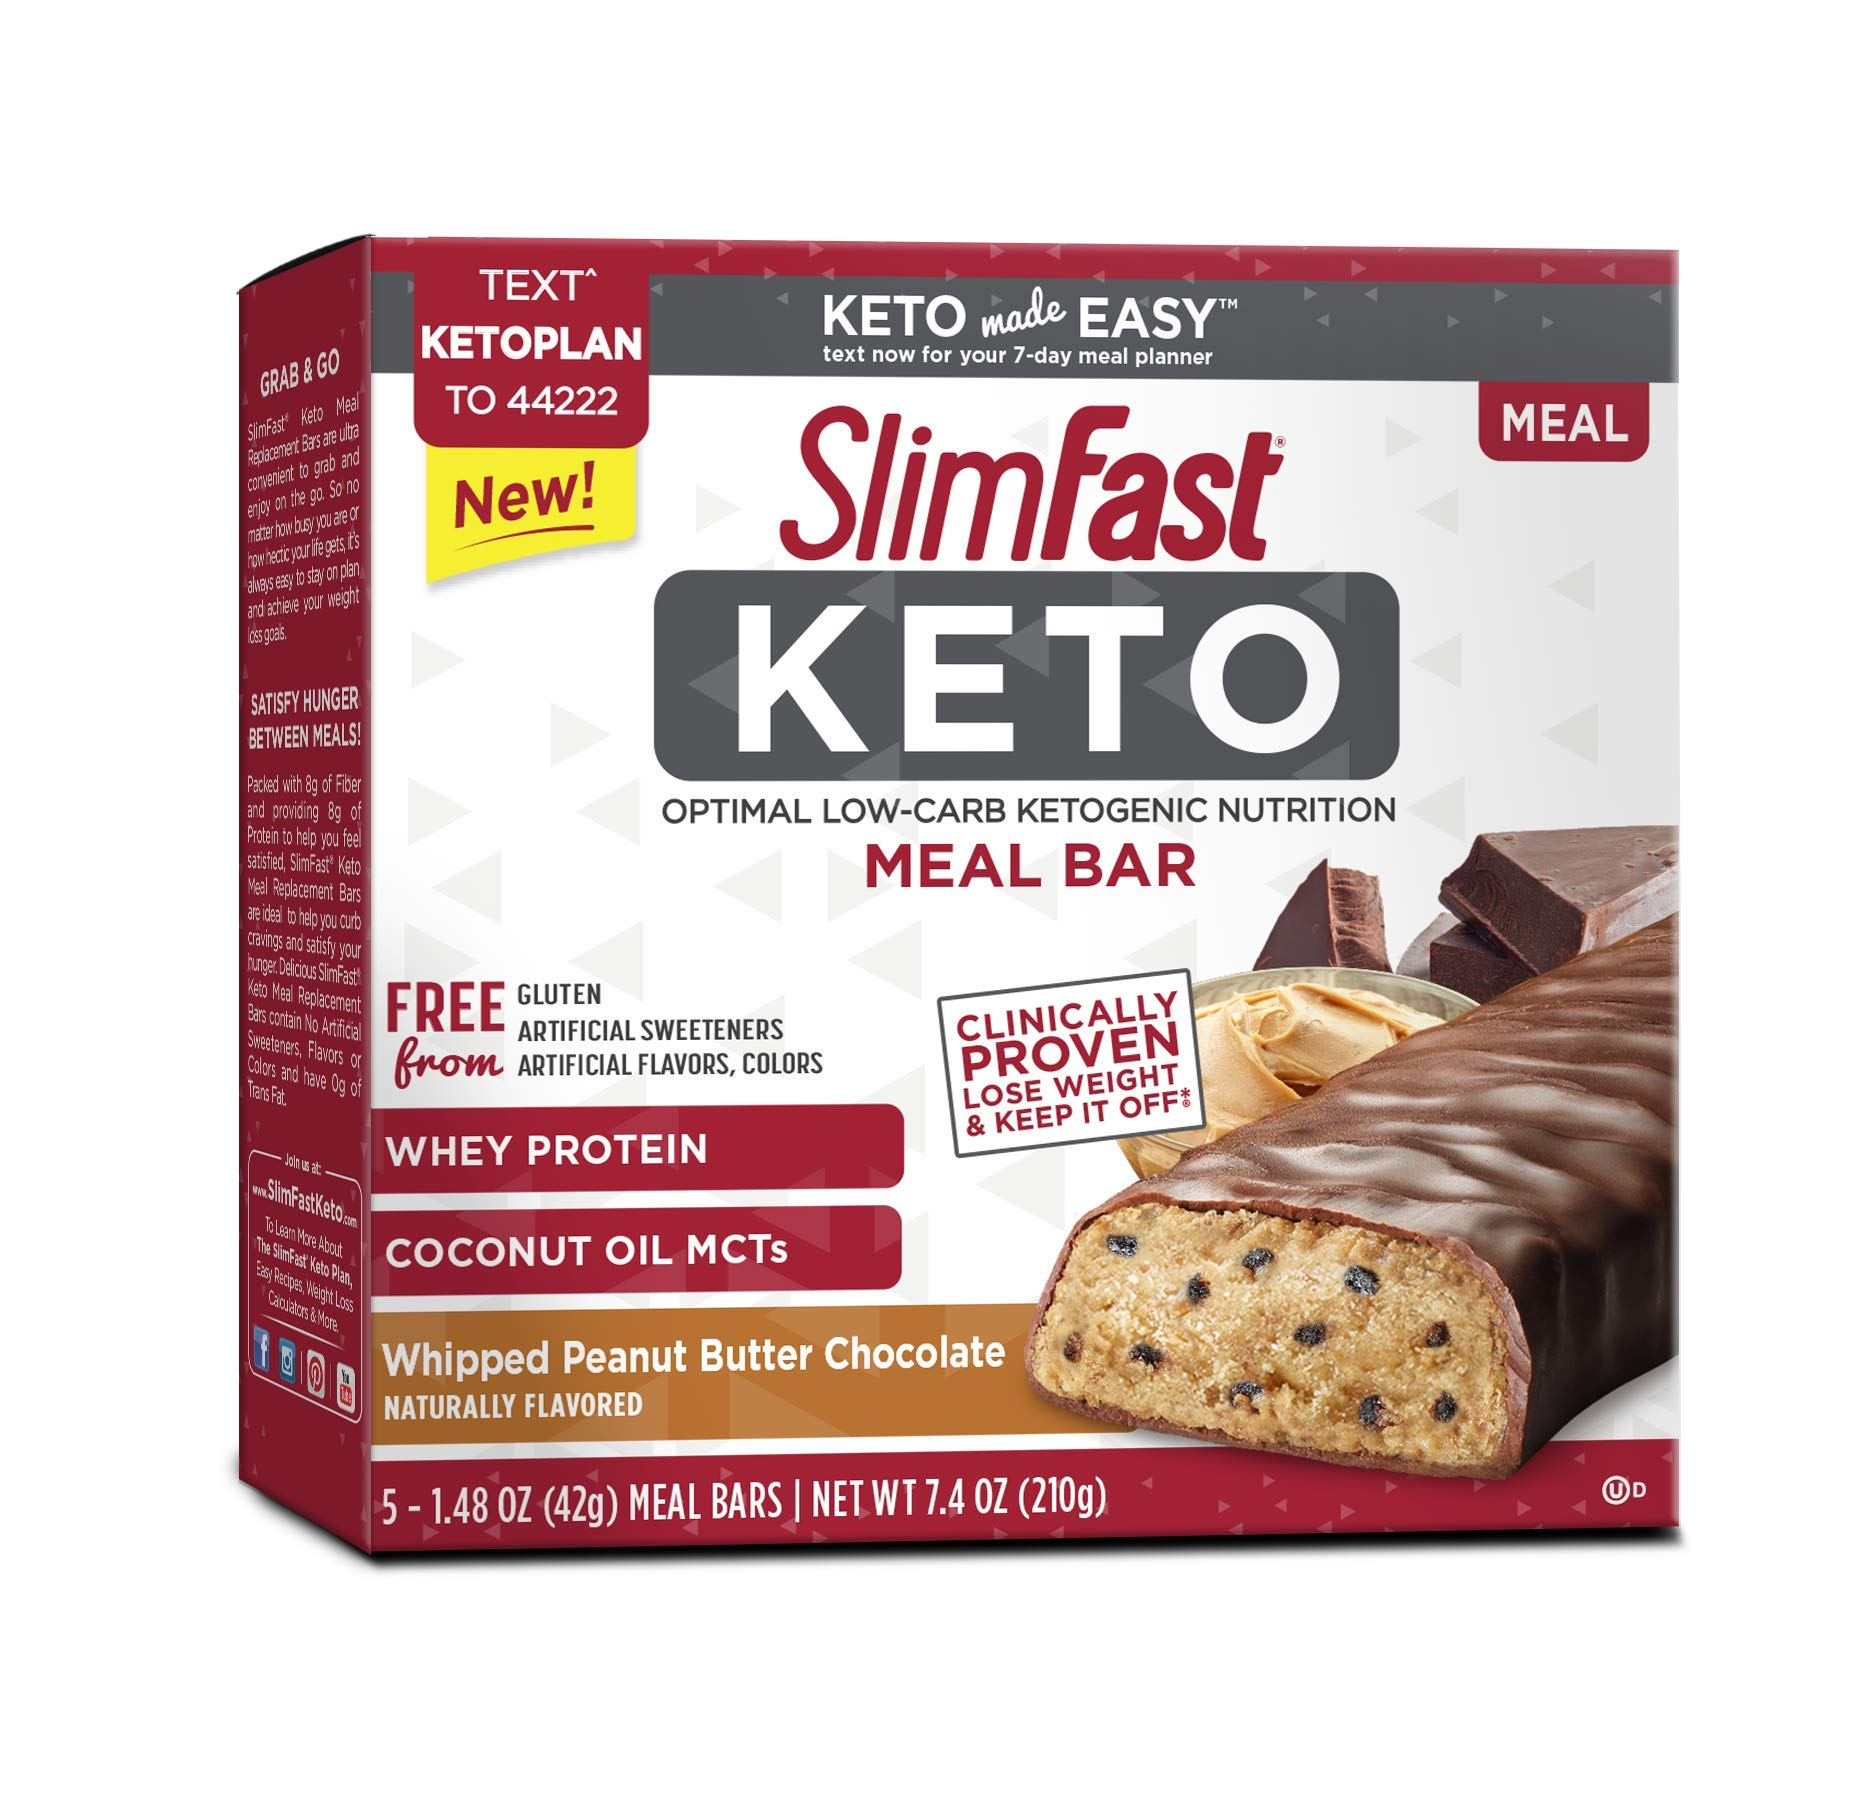 SlimFast Keto Meal Replacement Whipped Peanut Butter Chocolate Bar 1.48 oz 5 Bars per Box (4 Boxes) by Slimfast Keto